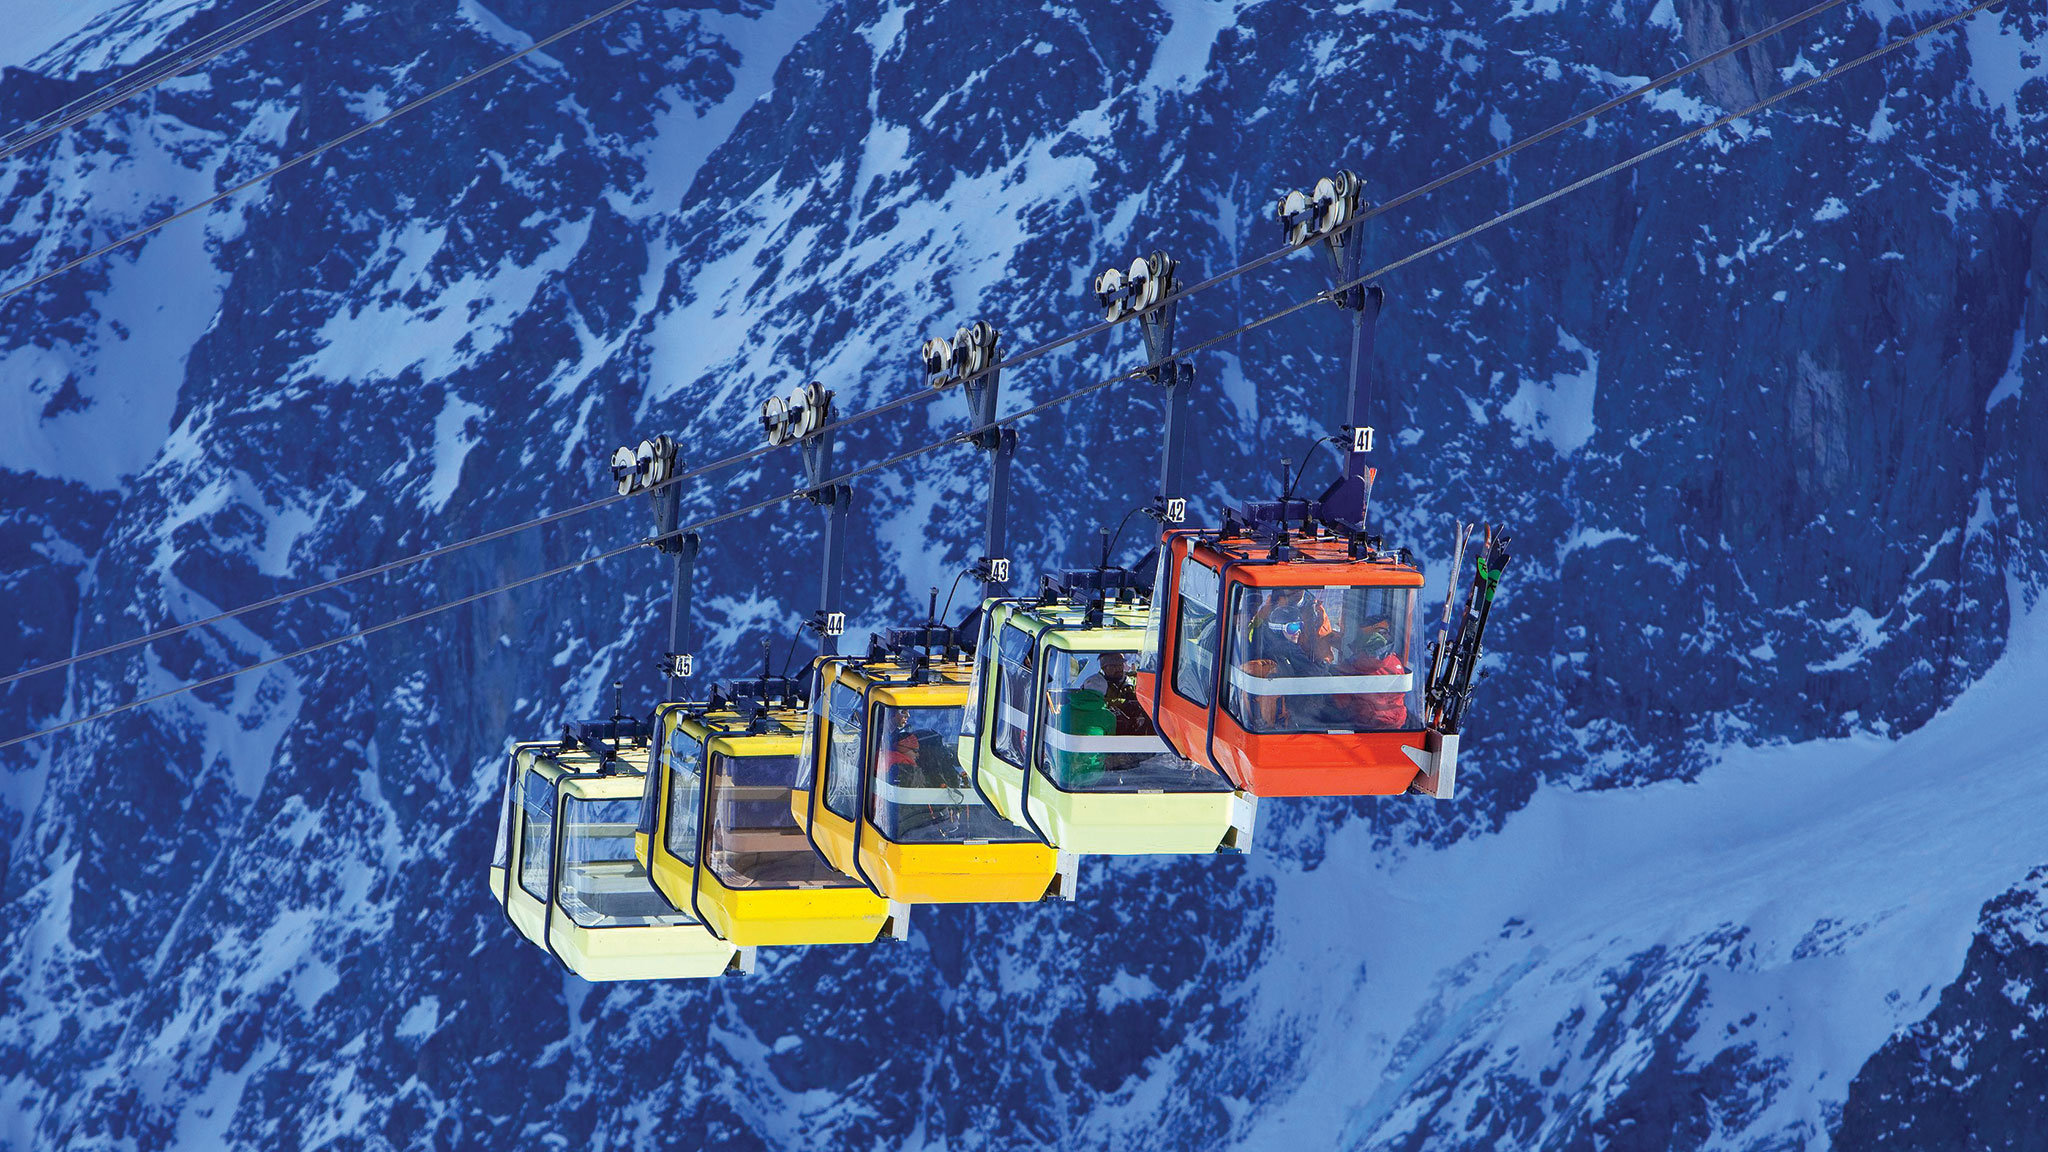 One of the highest ski lifts